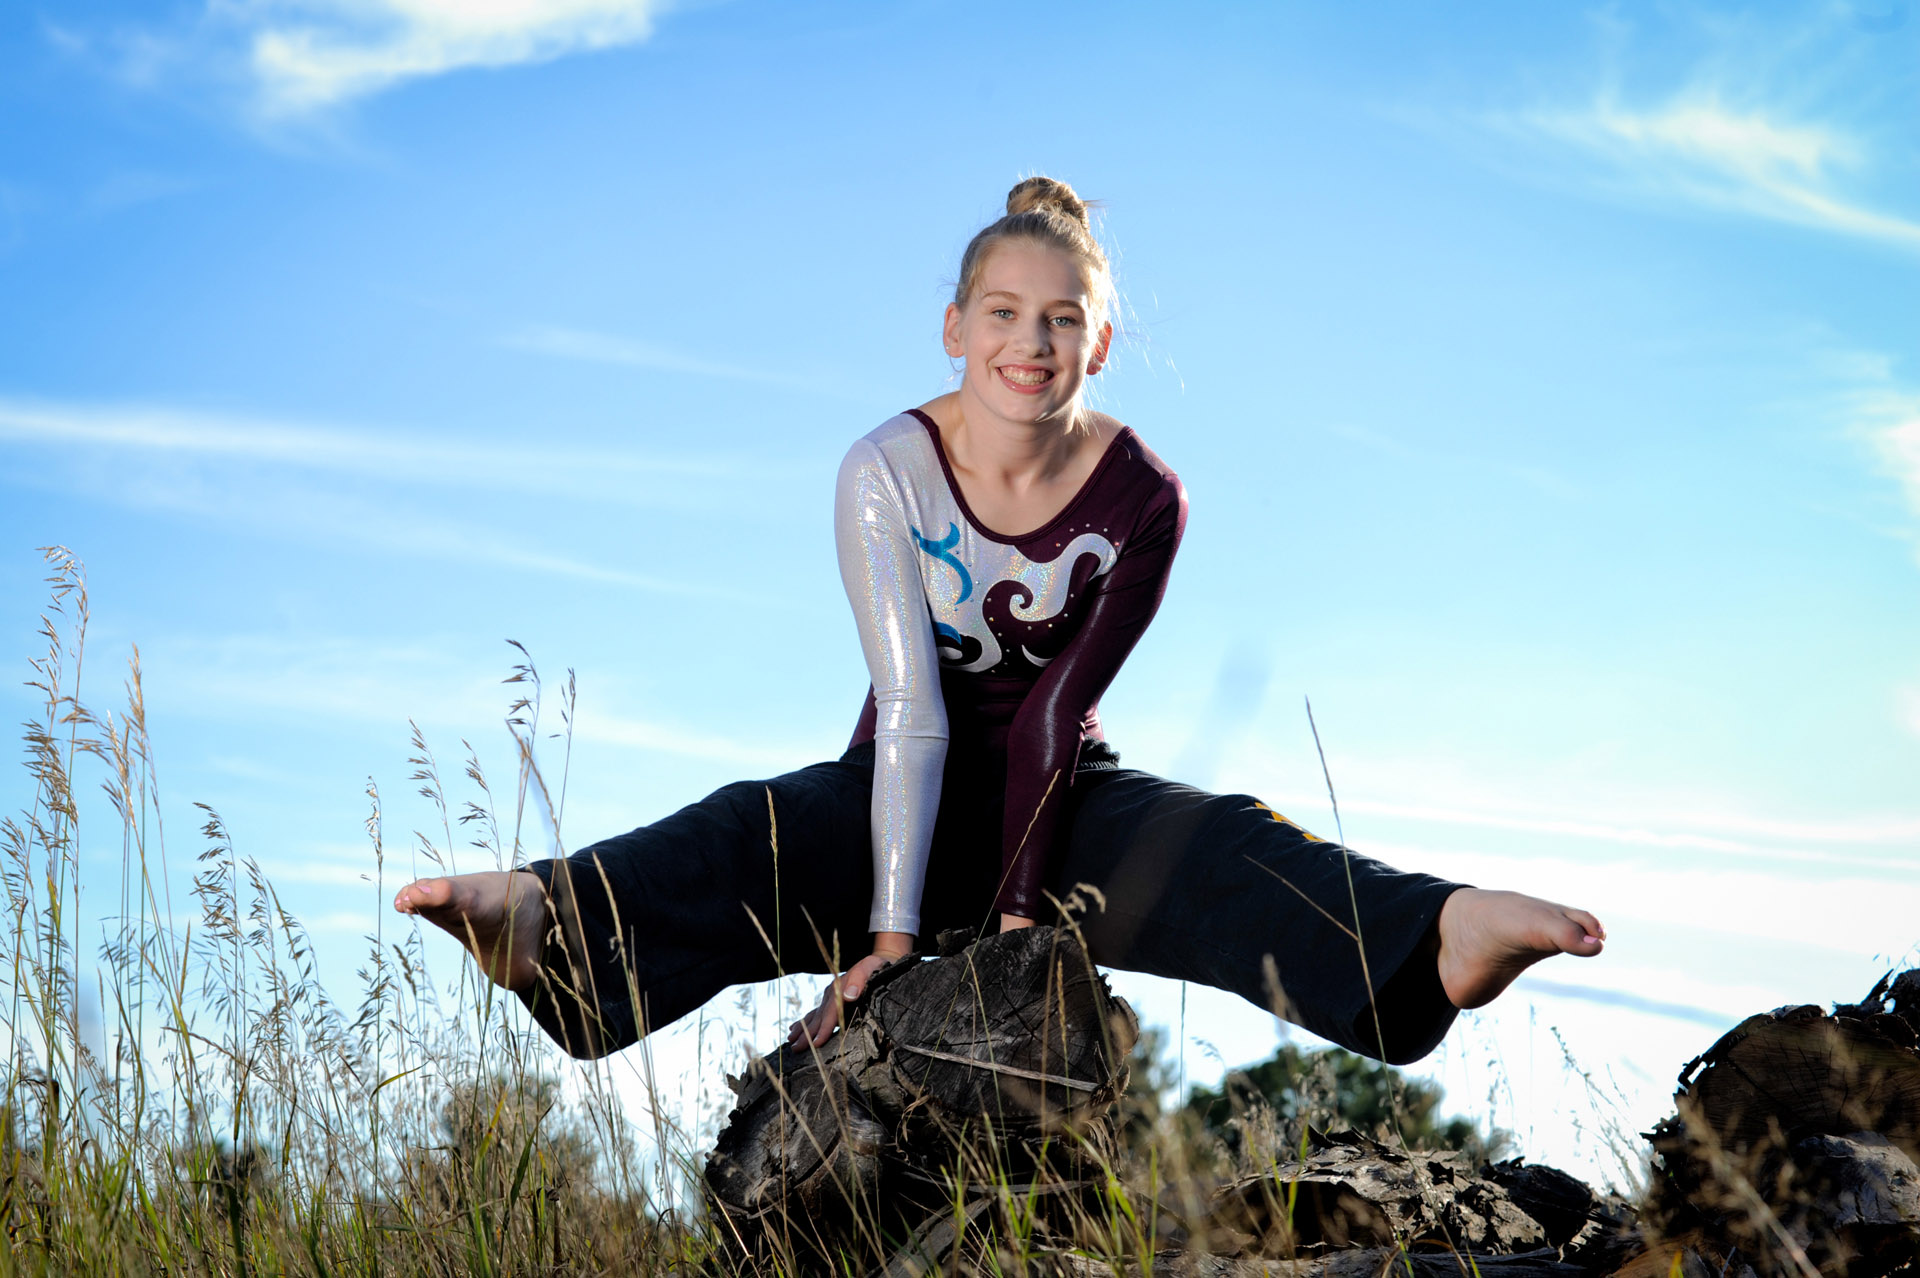 Troy, Michigan senior pictures photo taken of the high school gymnast senior using a log pile as gymnastic's equipment for her senior pictures in Troy, Michigan.